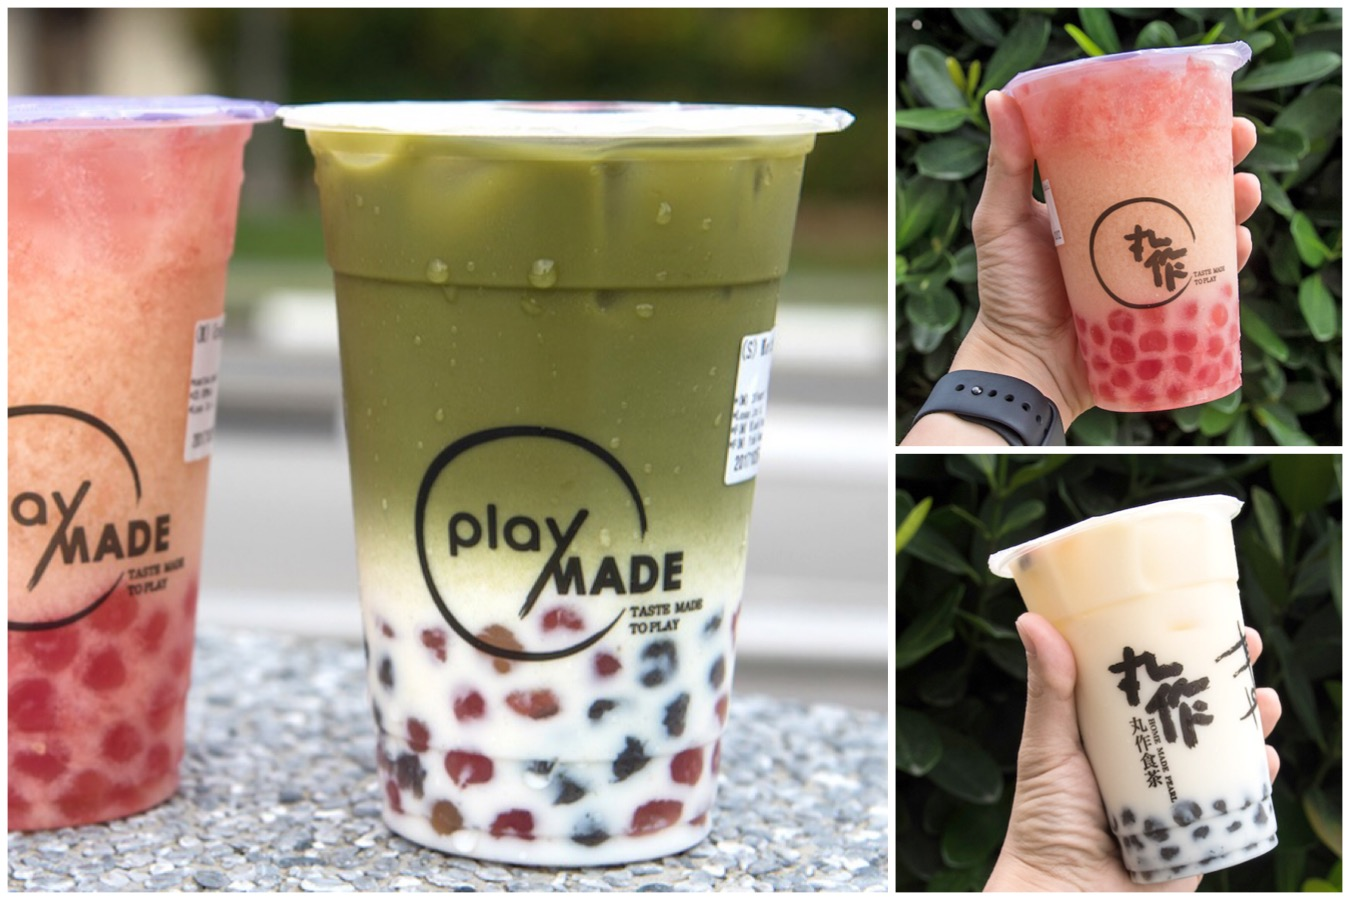 PlayMade by 丸作 - Popular Taiwanese Bubble Tea Shop With Unique Flavoured Pearls, At Tampines One